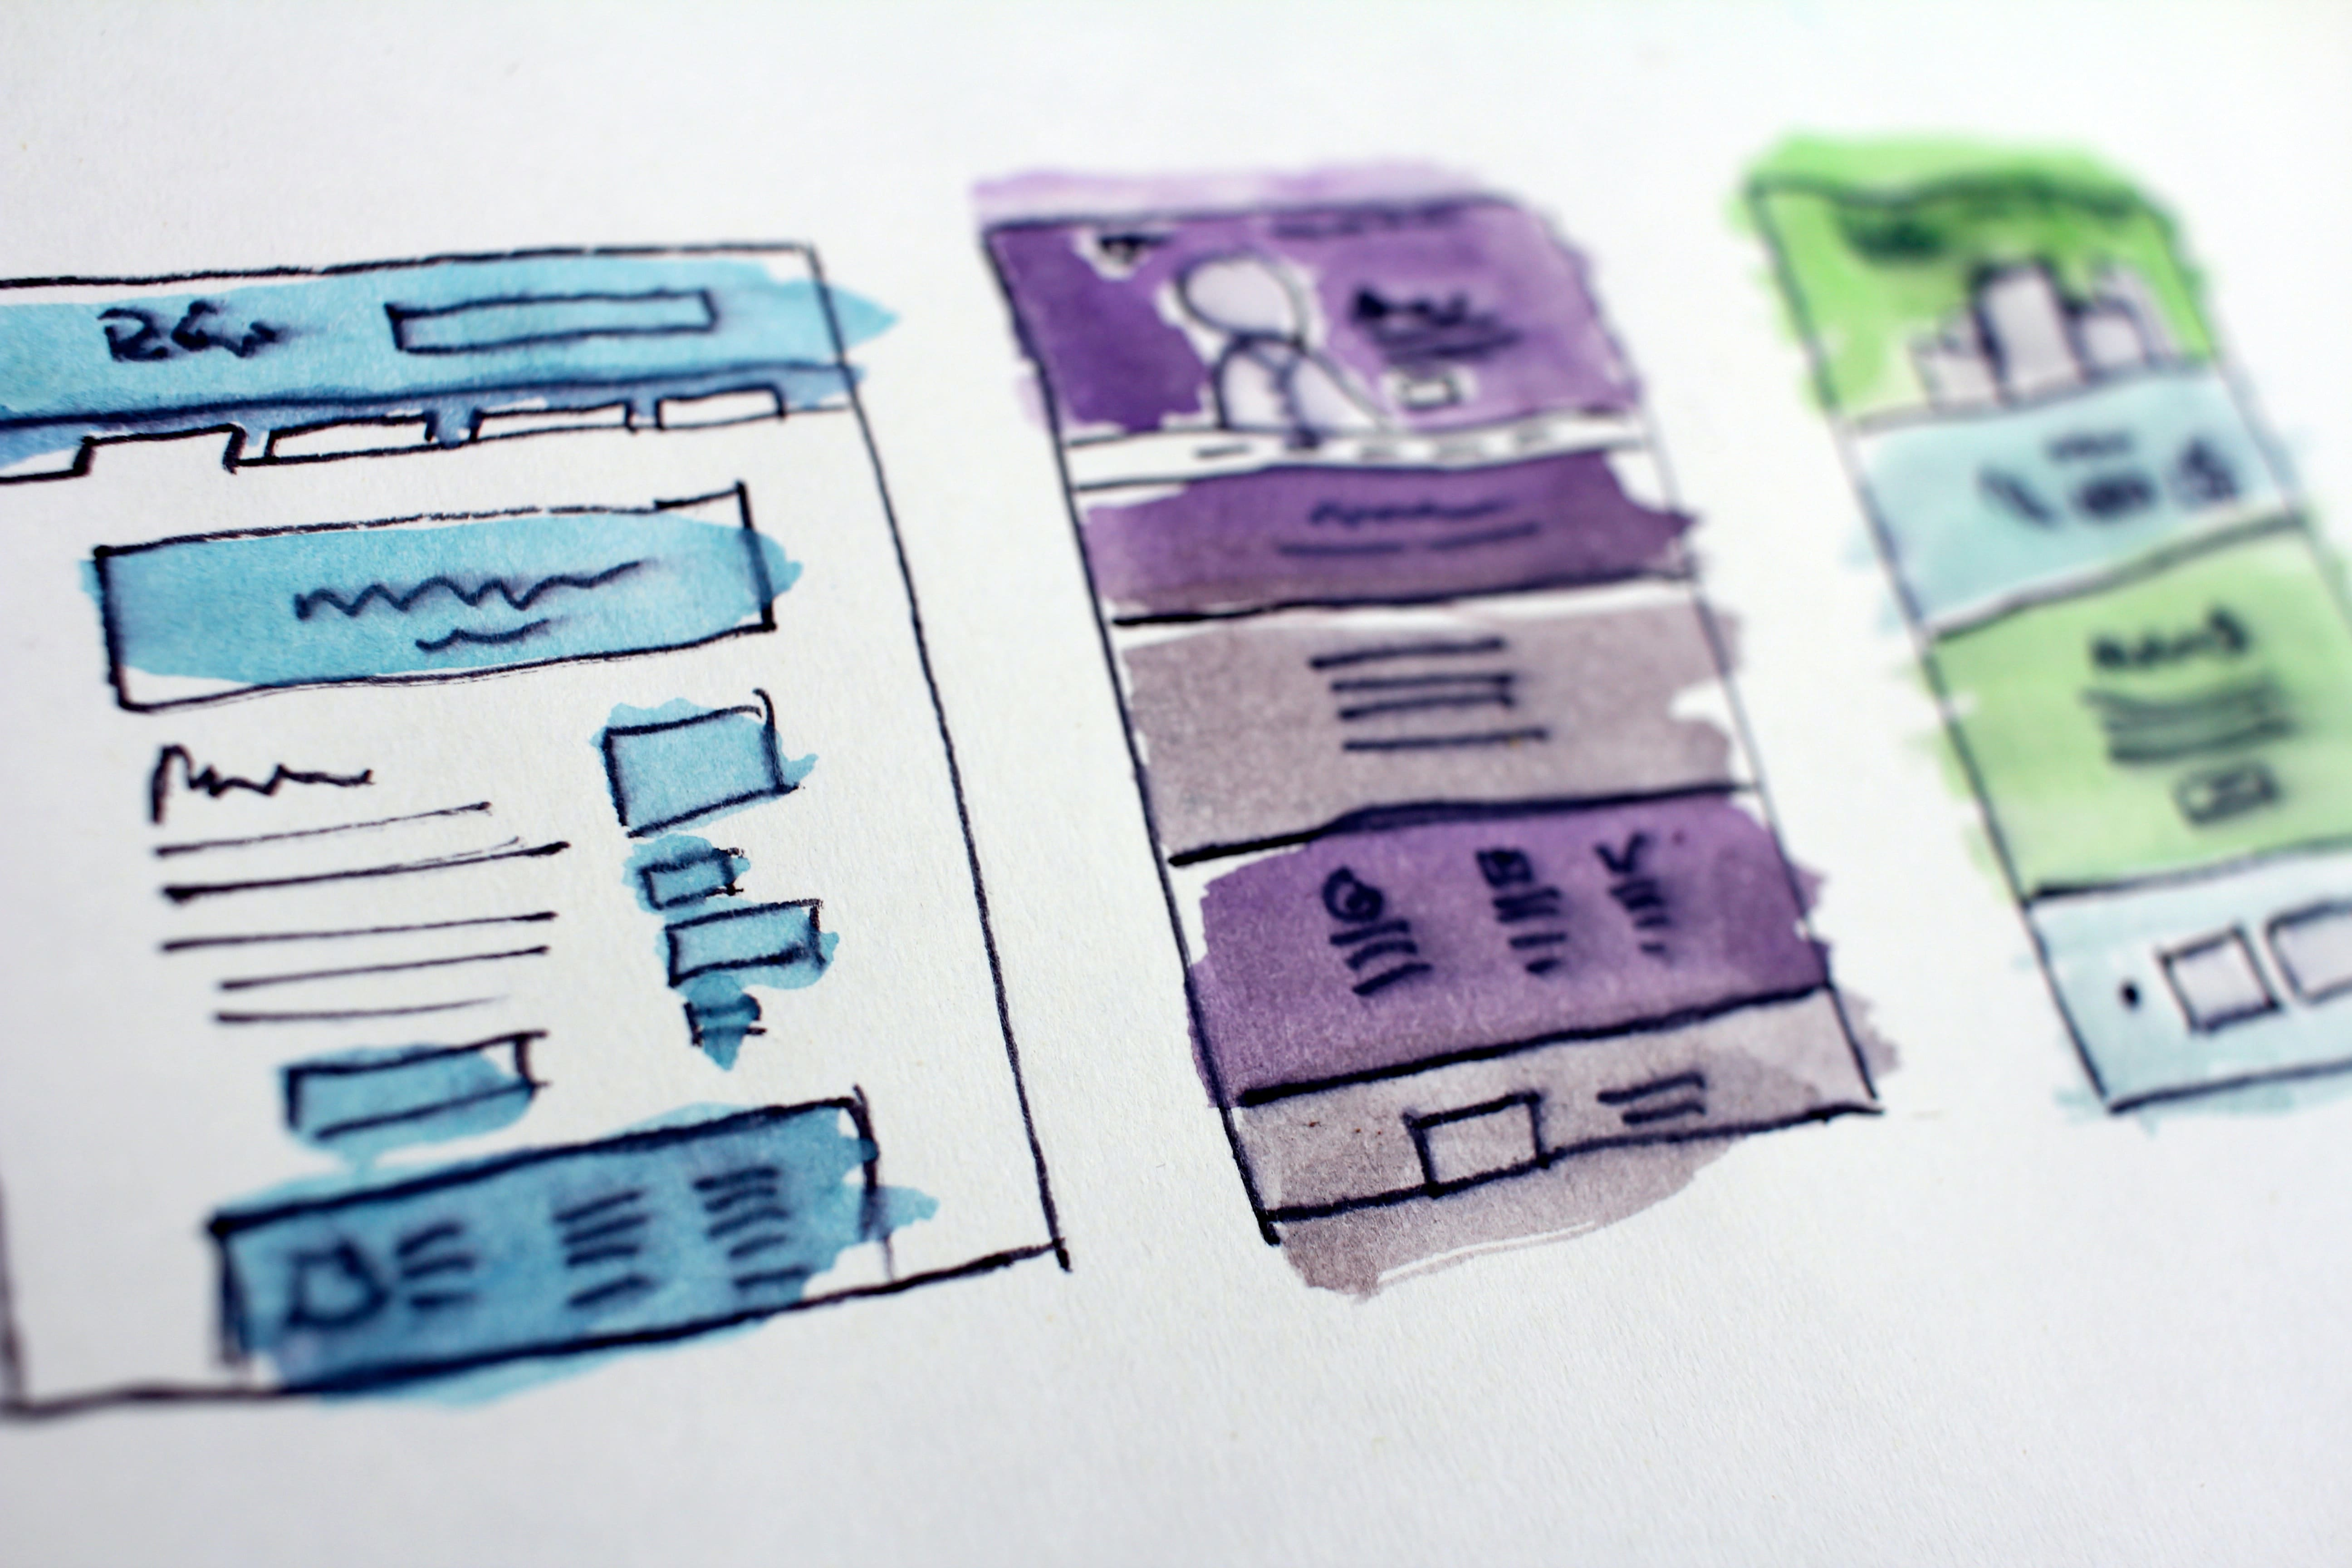 ui/ux wireframes and designs for mobile app